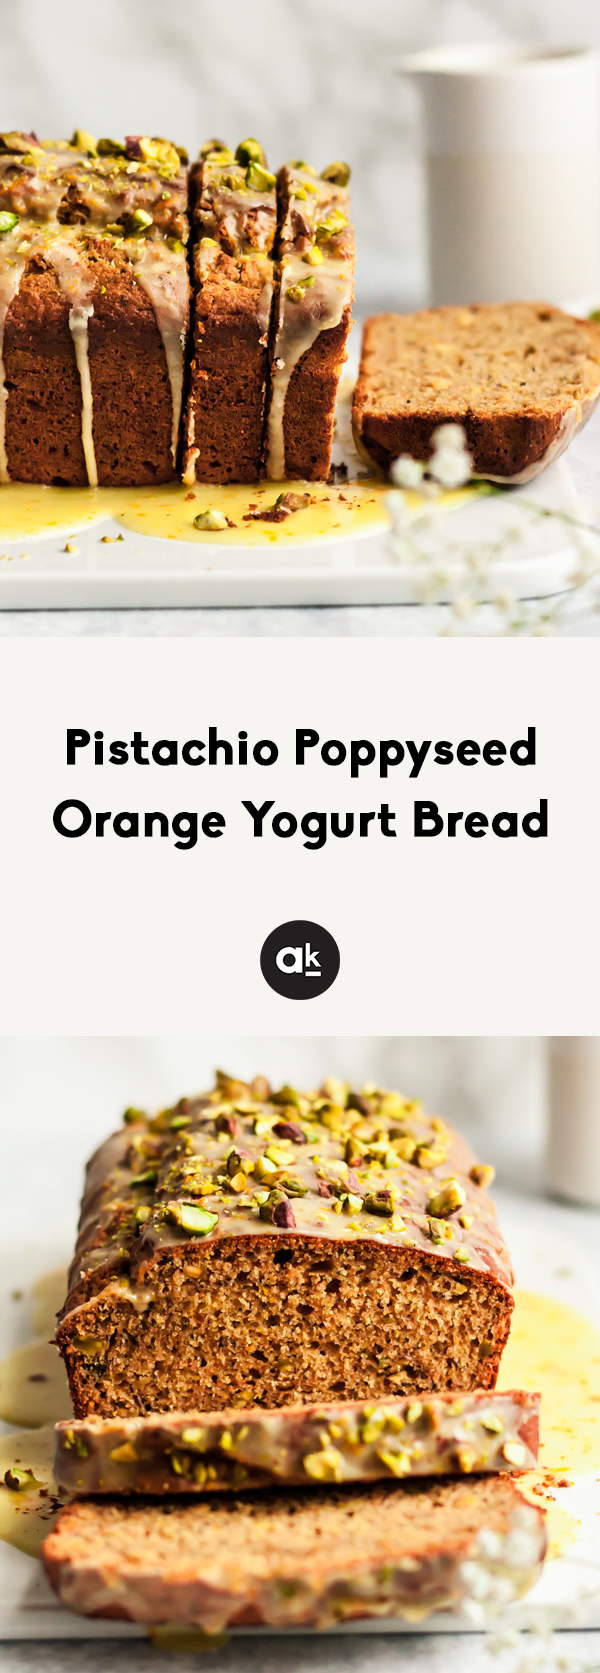 Gorgeous pistachio poppyseed orange yogurt bread naturally sweetened with honey, fresh orange juice, and topped with a perfectly sweet orange glaze. A delicious, healthy yogurt bread for spring!